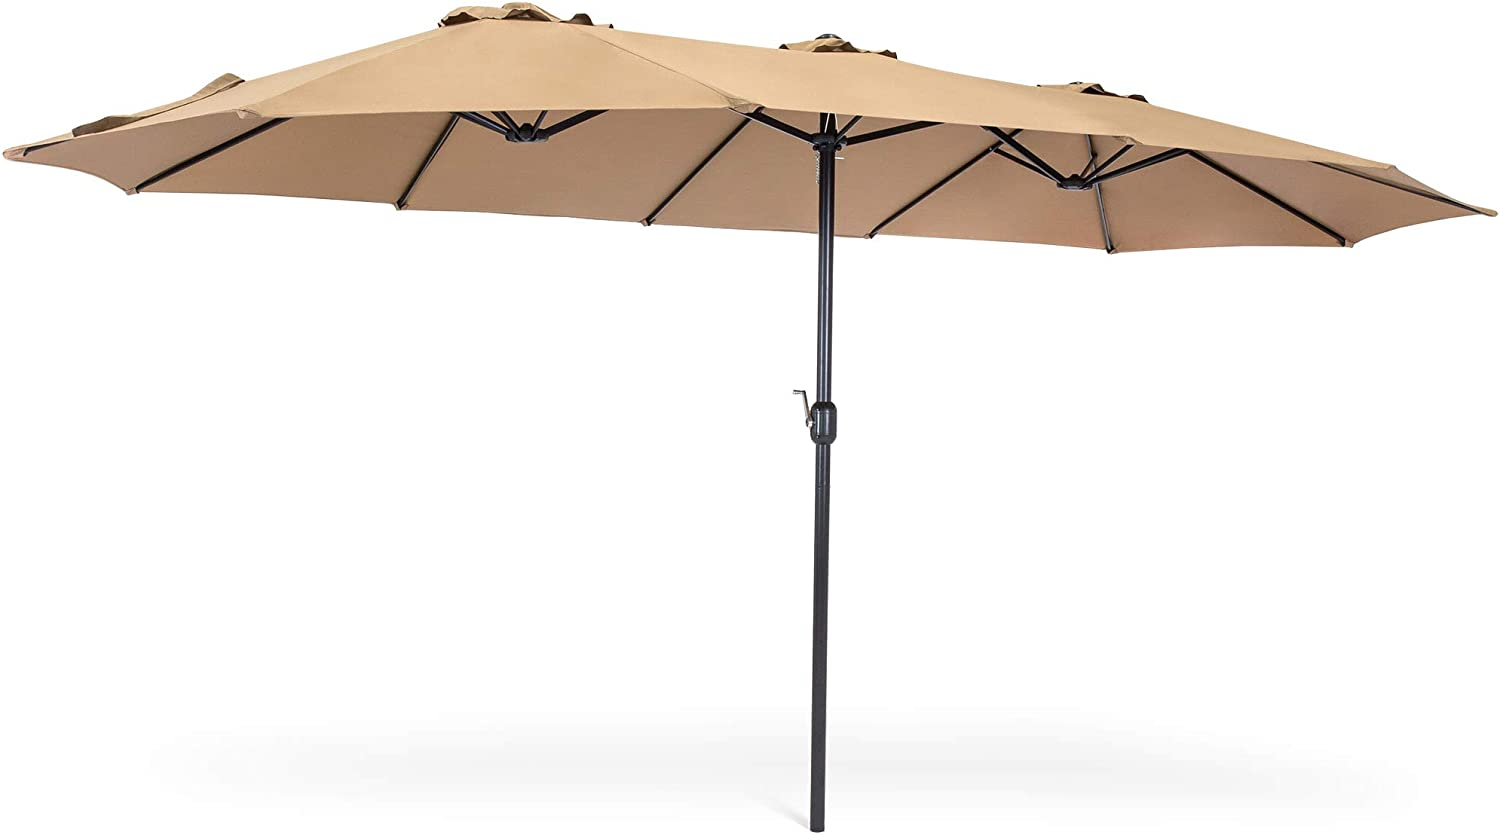 Best Choice Products 15x9ft Large Double-Sided Rectangular Outdoor Aluminum Twin Patio Market Umbrella w/Crank and Wind Vents - Beige